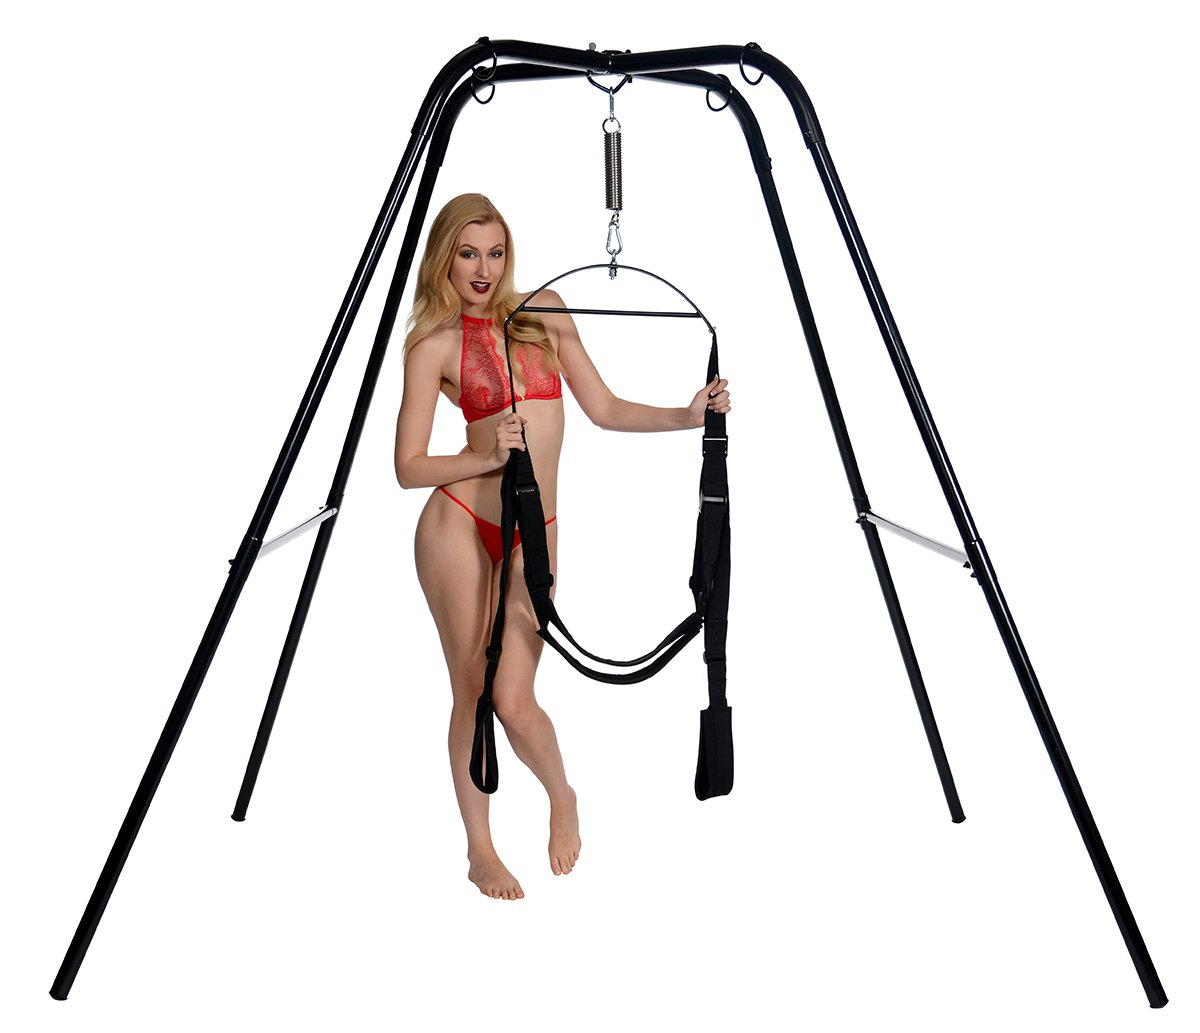 Trinity Vibes Ultimate Sex Swing Stand (Best Under $250)